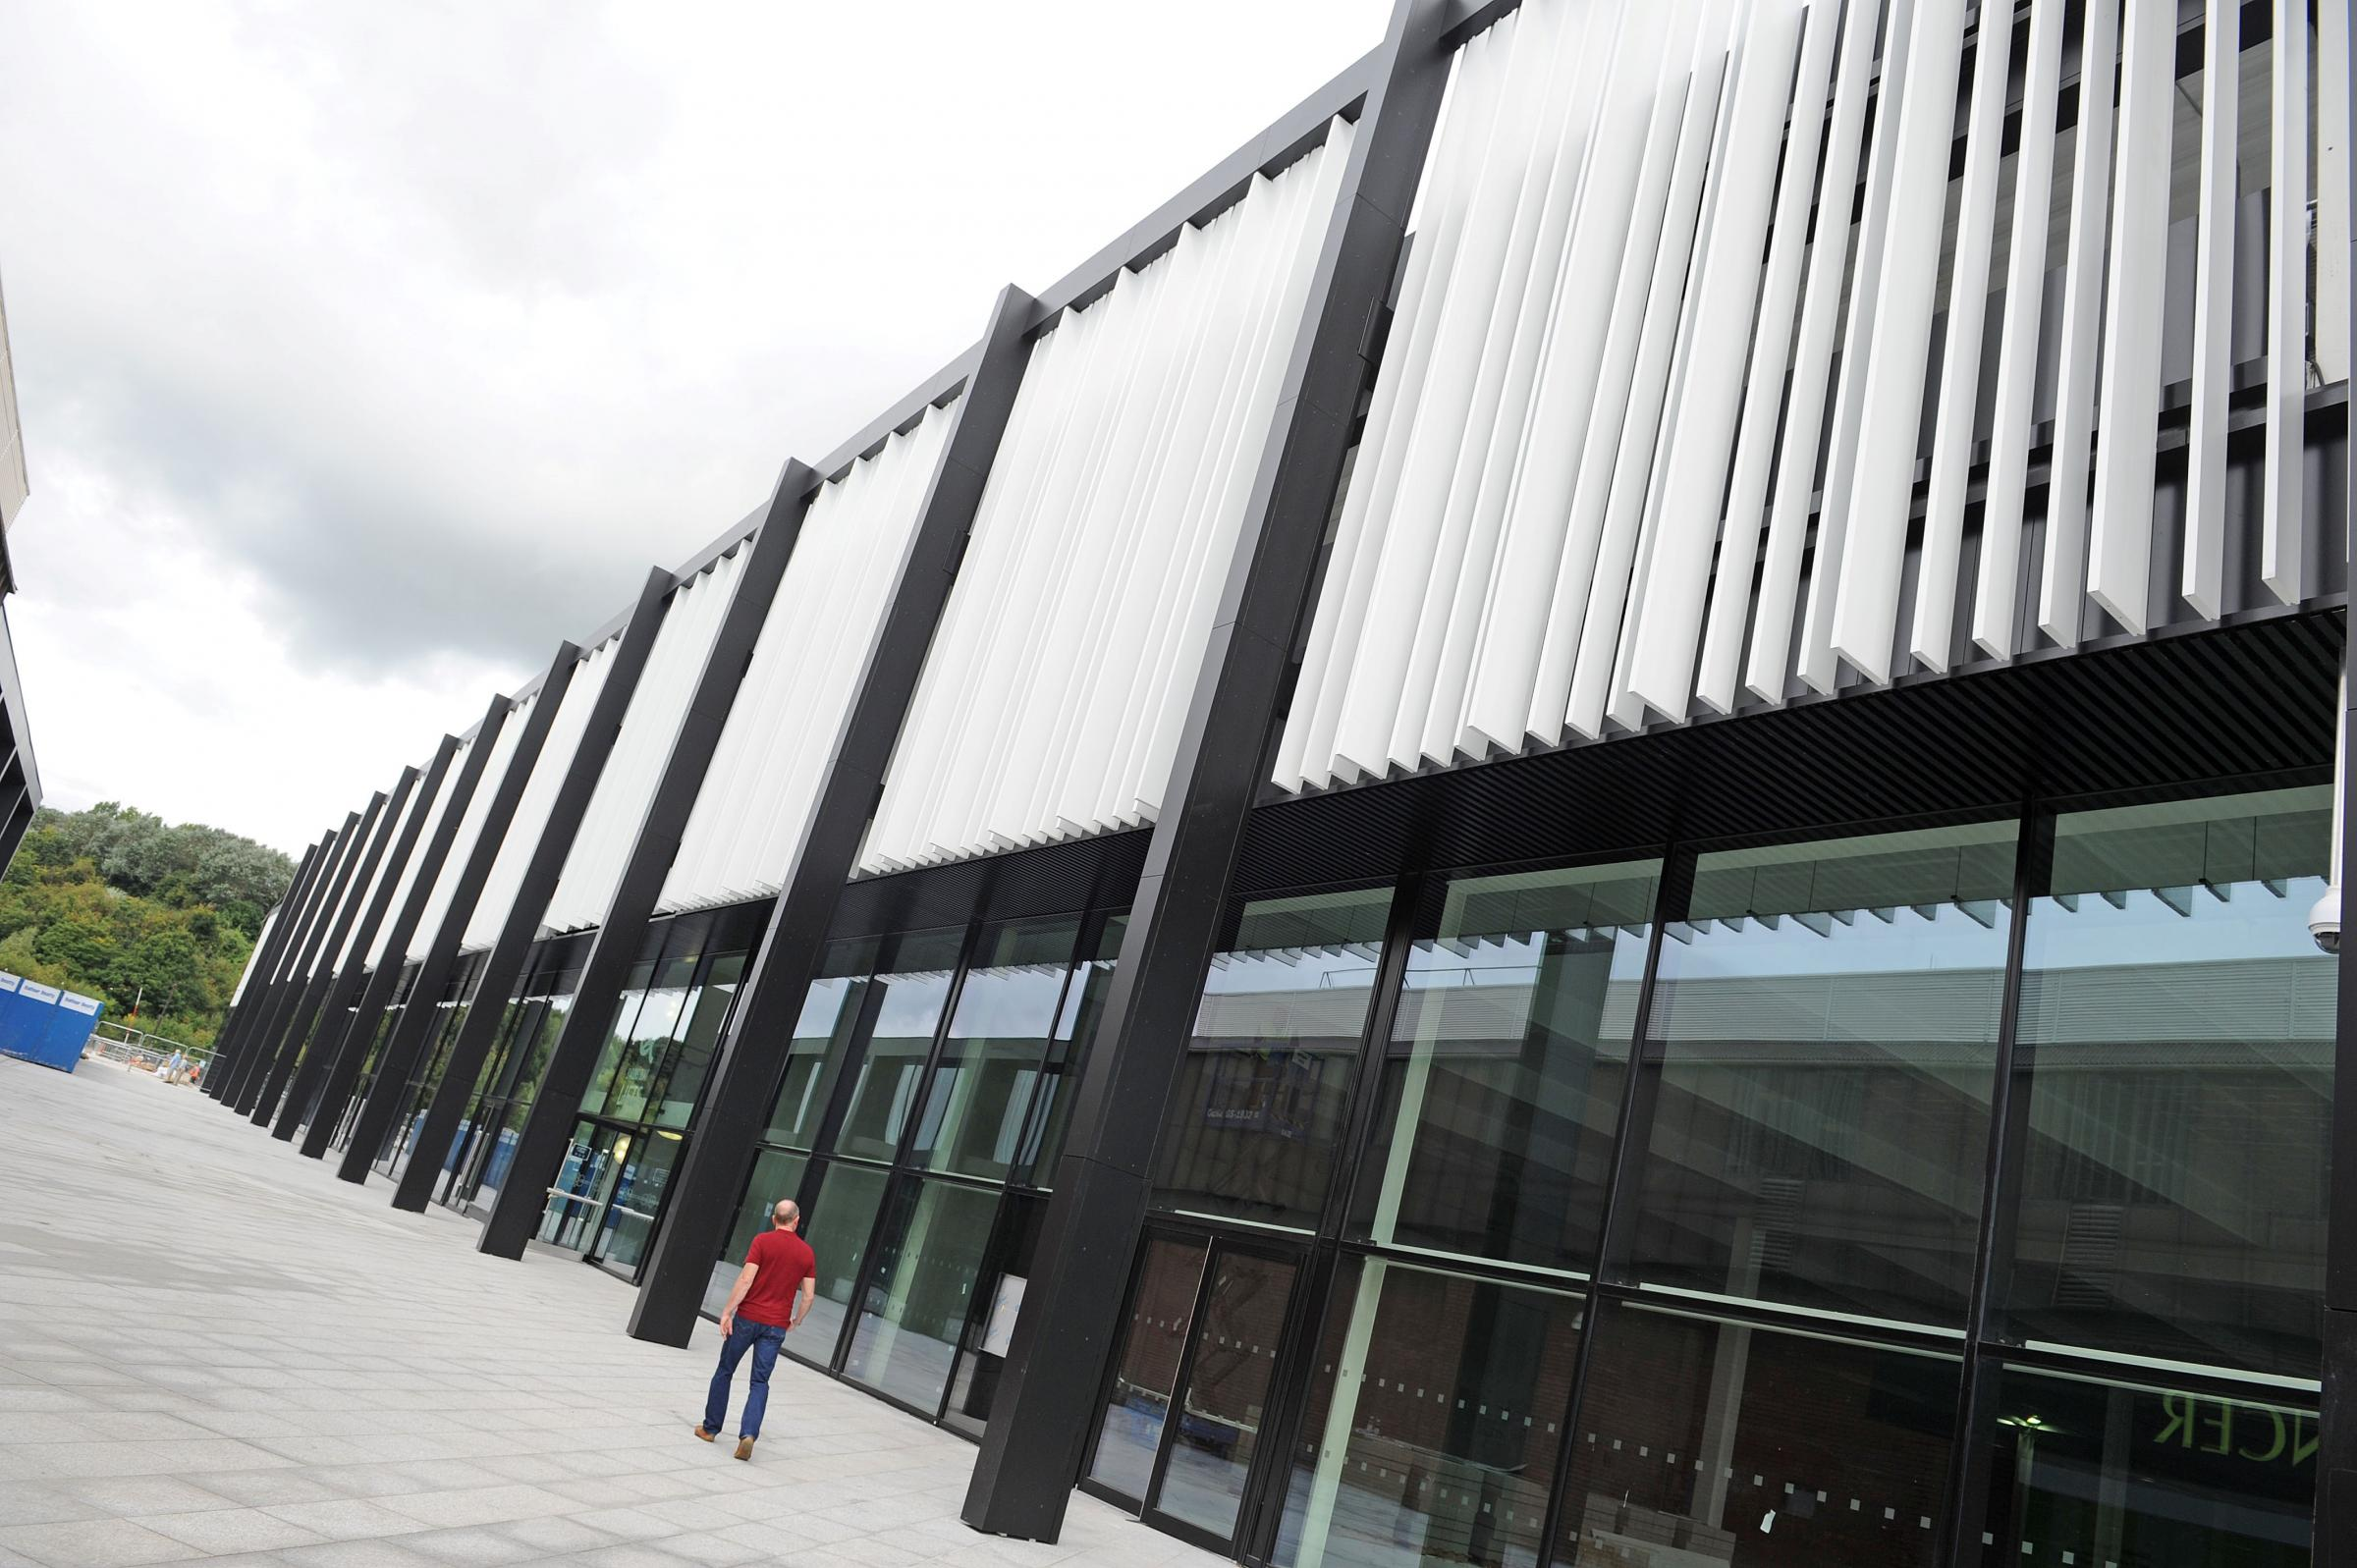 Barons Quay boost as major fashion retailer signs contract for 21,500sq ft store